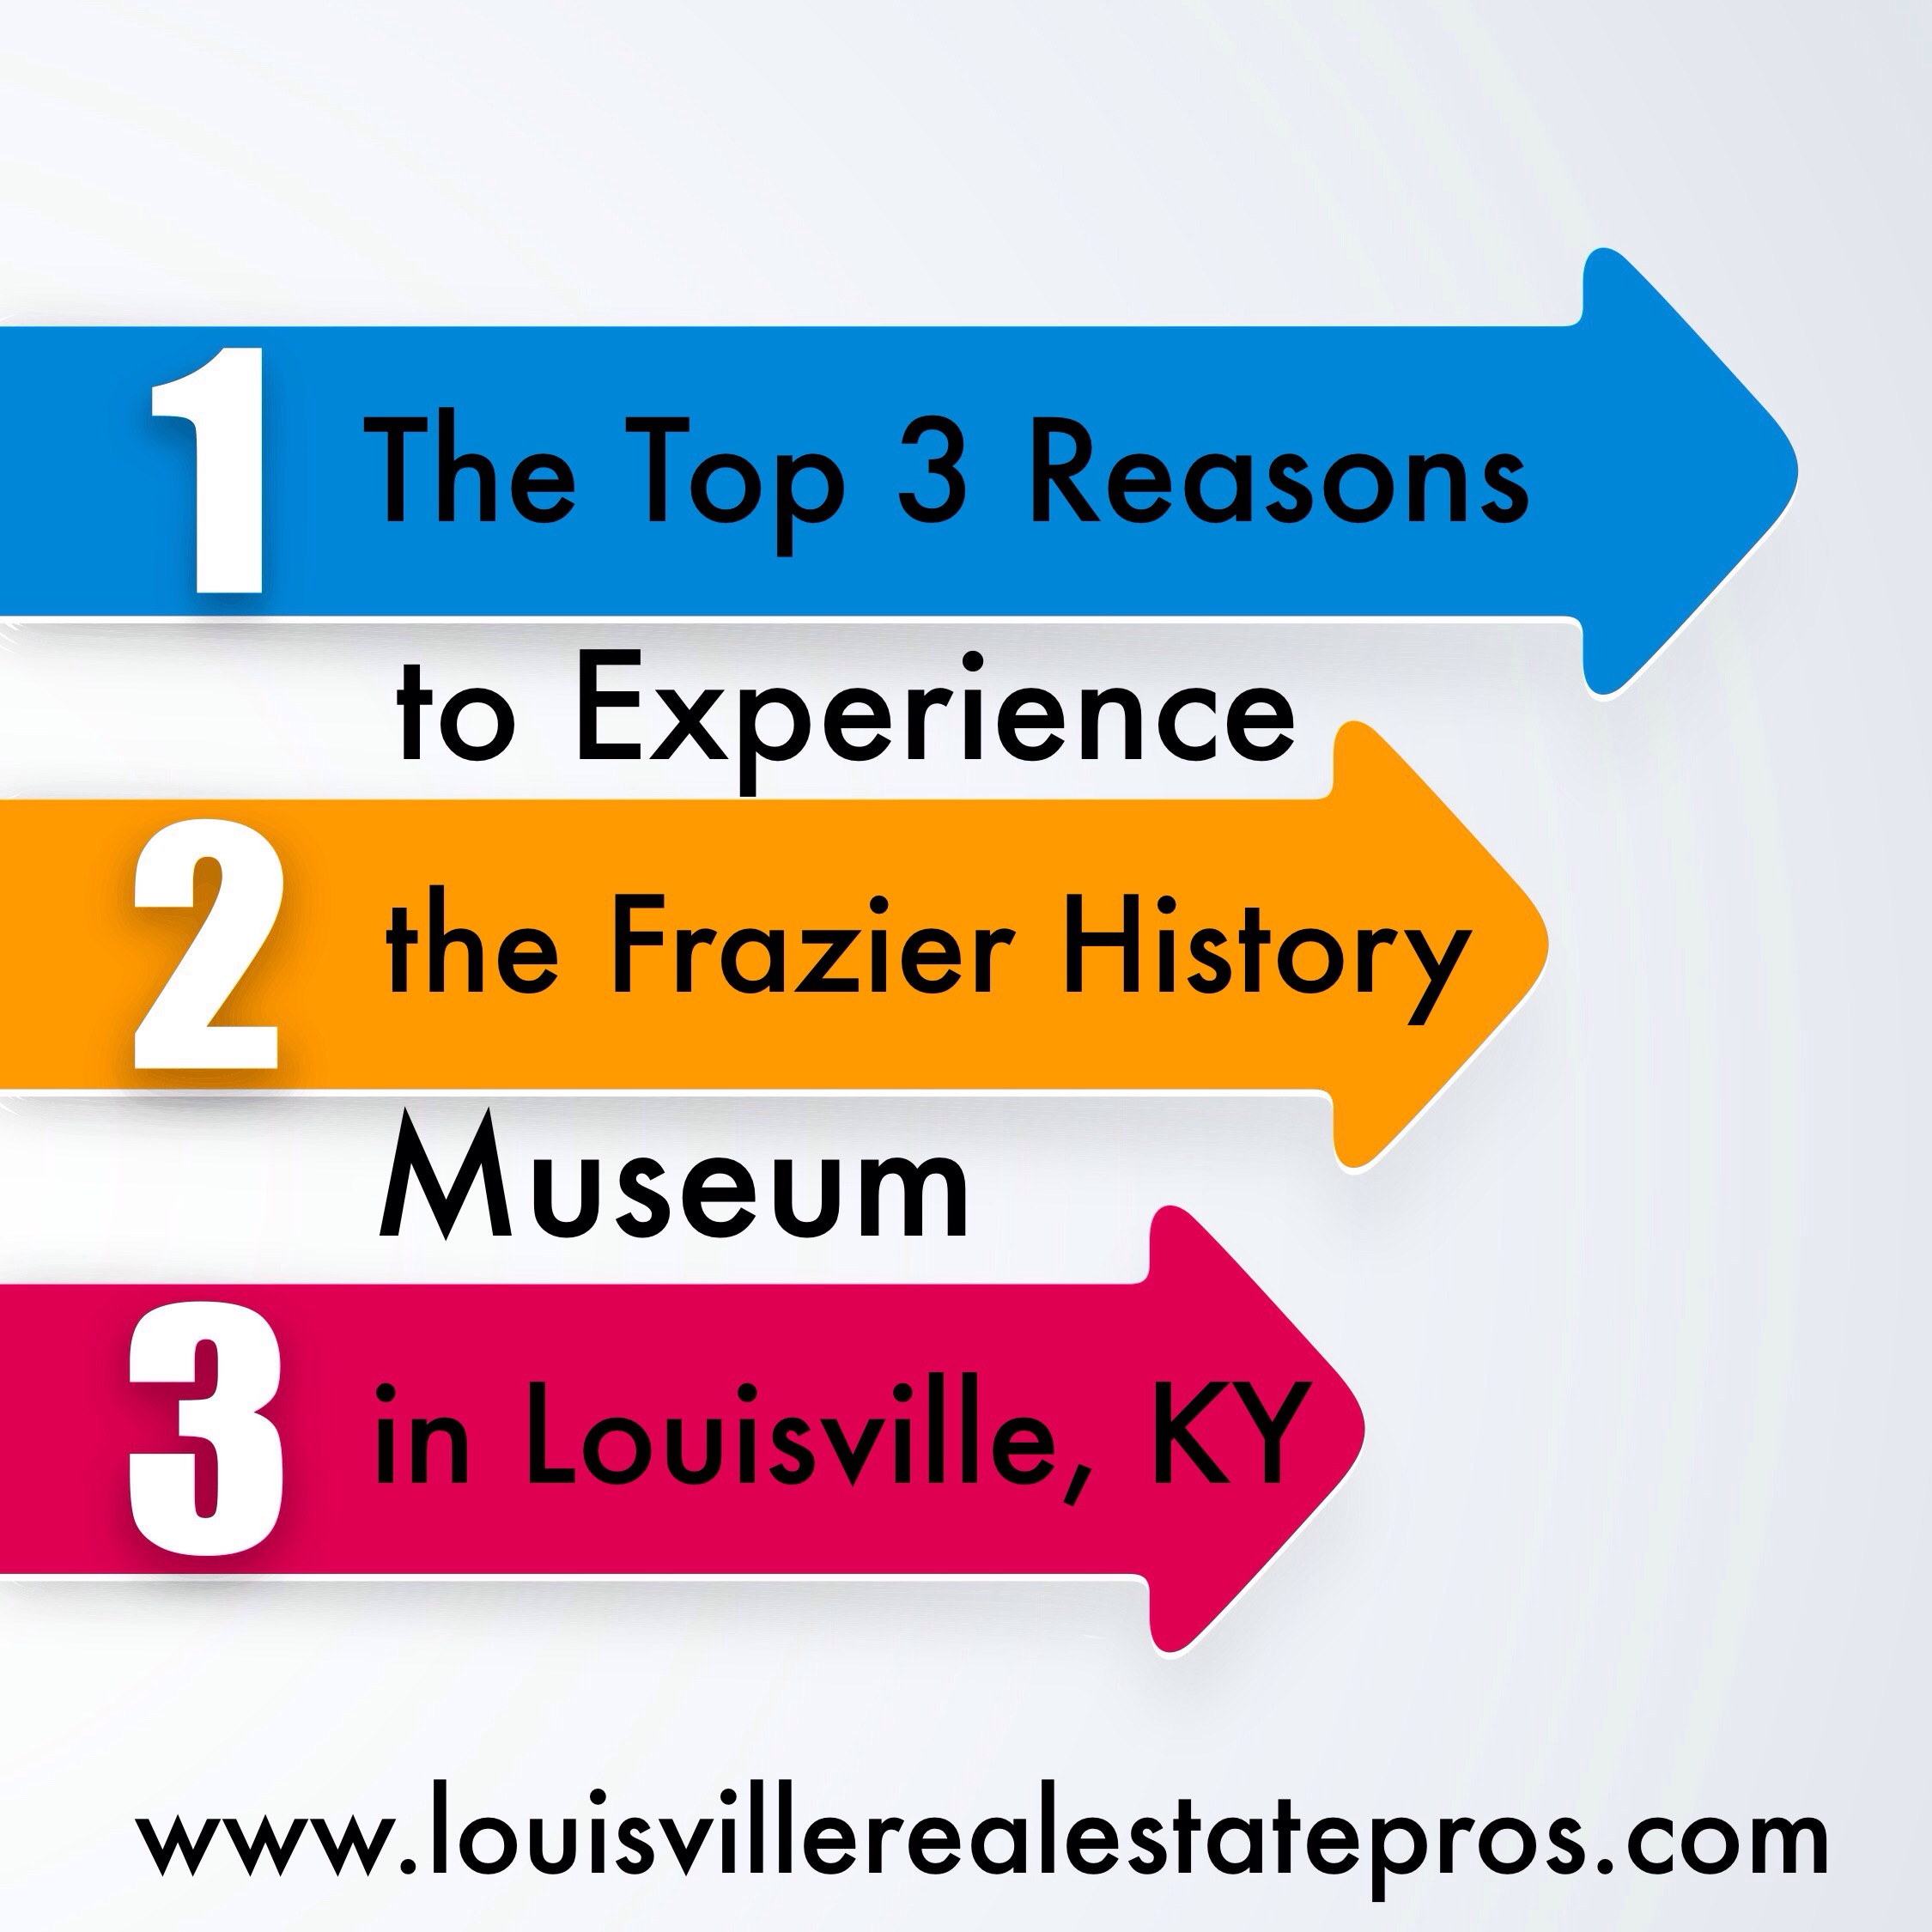 The Top 3 Reasons to Experience the Frazier History Museum in Louisville, KY